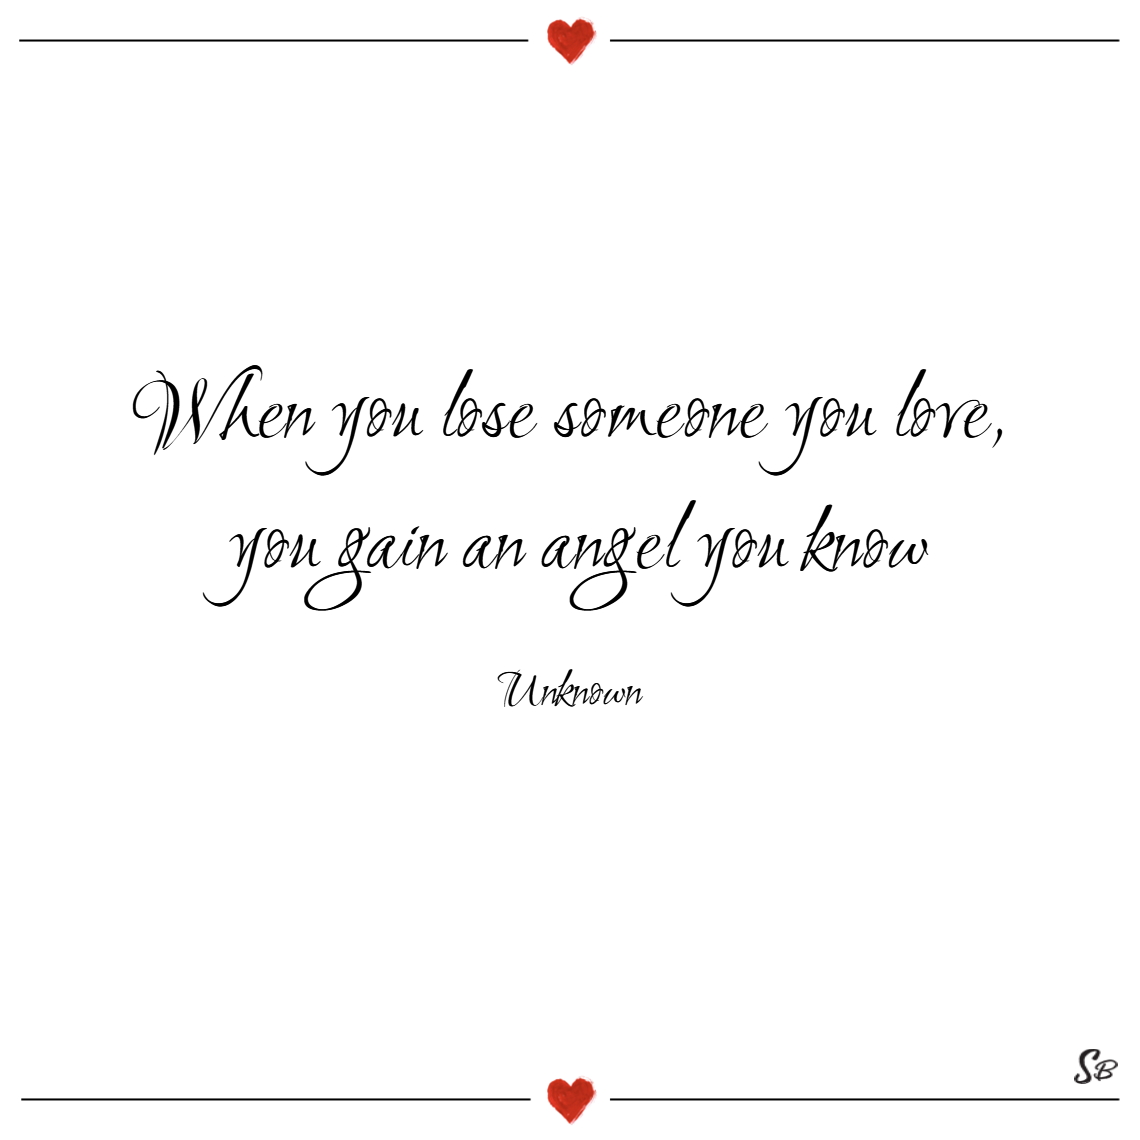 When you lose someone you love you gain an angel you know – unknown